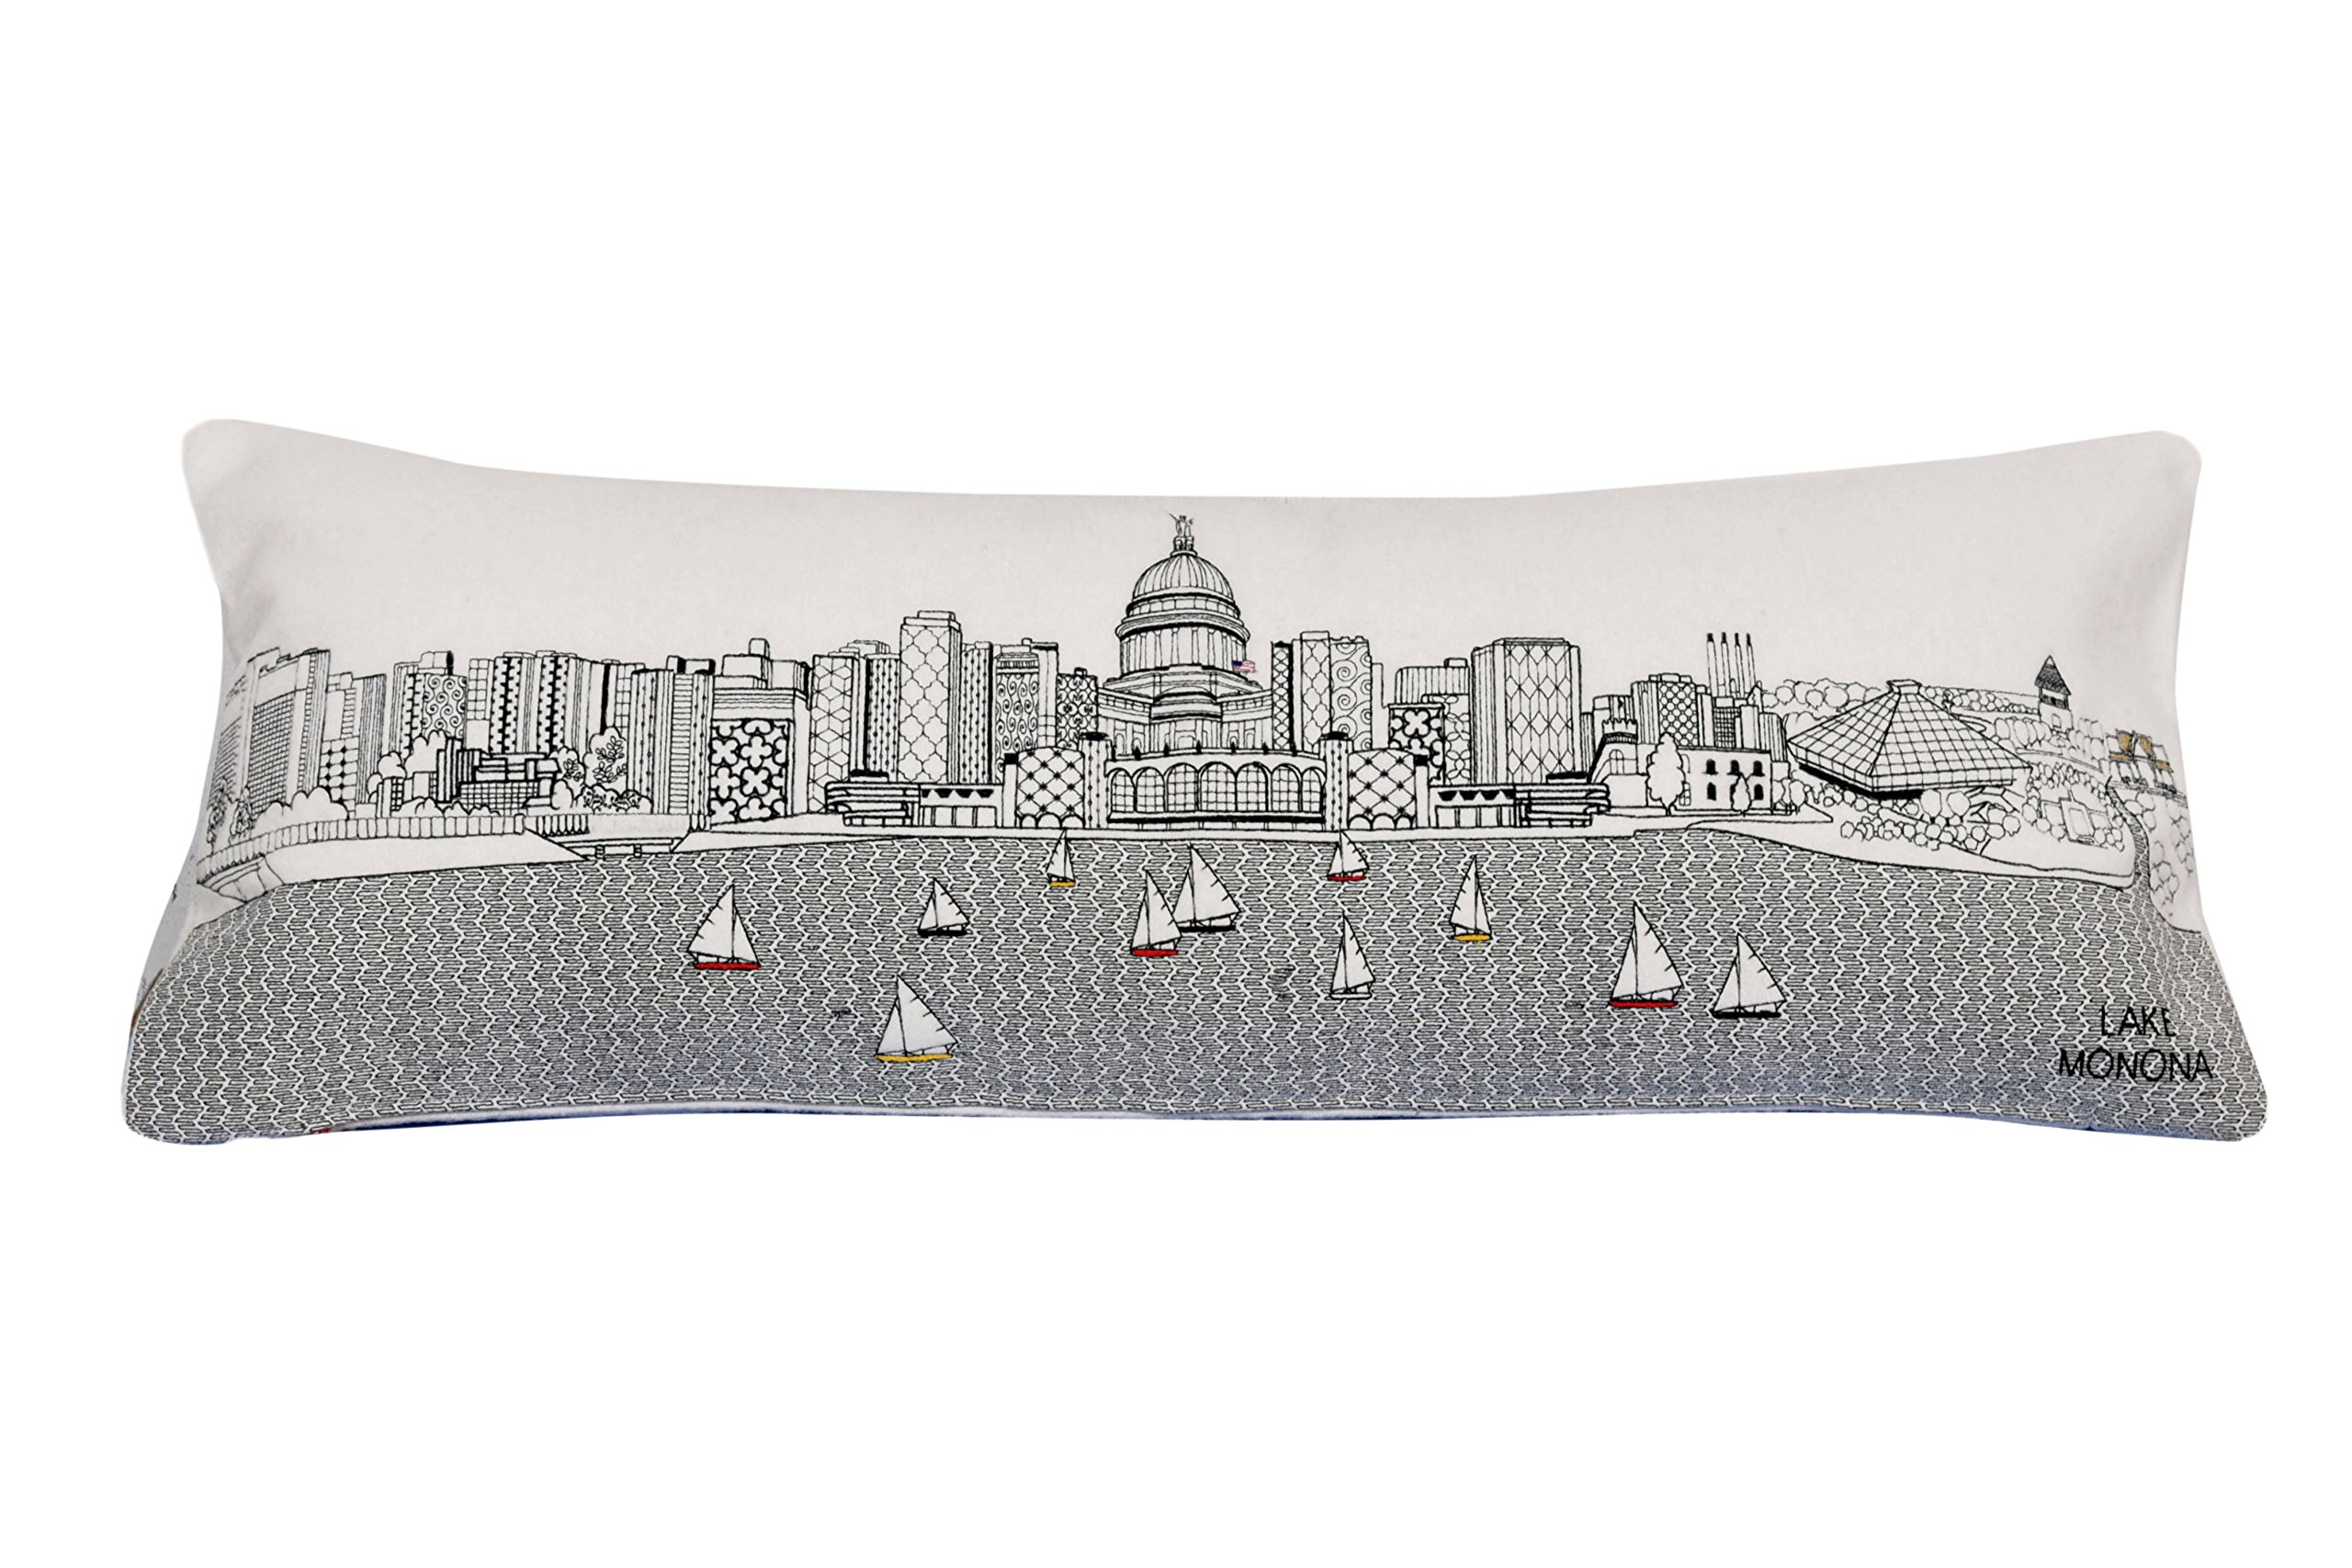 Beyond Cushions Polyester Throw Pillows Beyond Cushions Madison Wisconsin Daytime Skyline Queen Size Embroidered Pillow 35 X 14 X 5 Inches Off-White Model # MAD-DAY-QUN